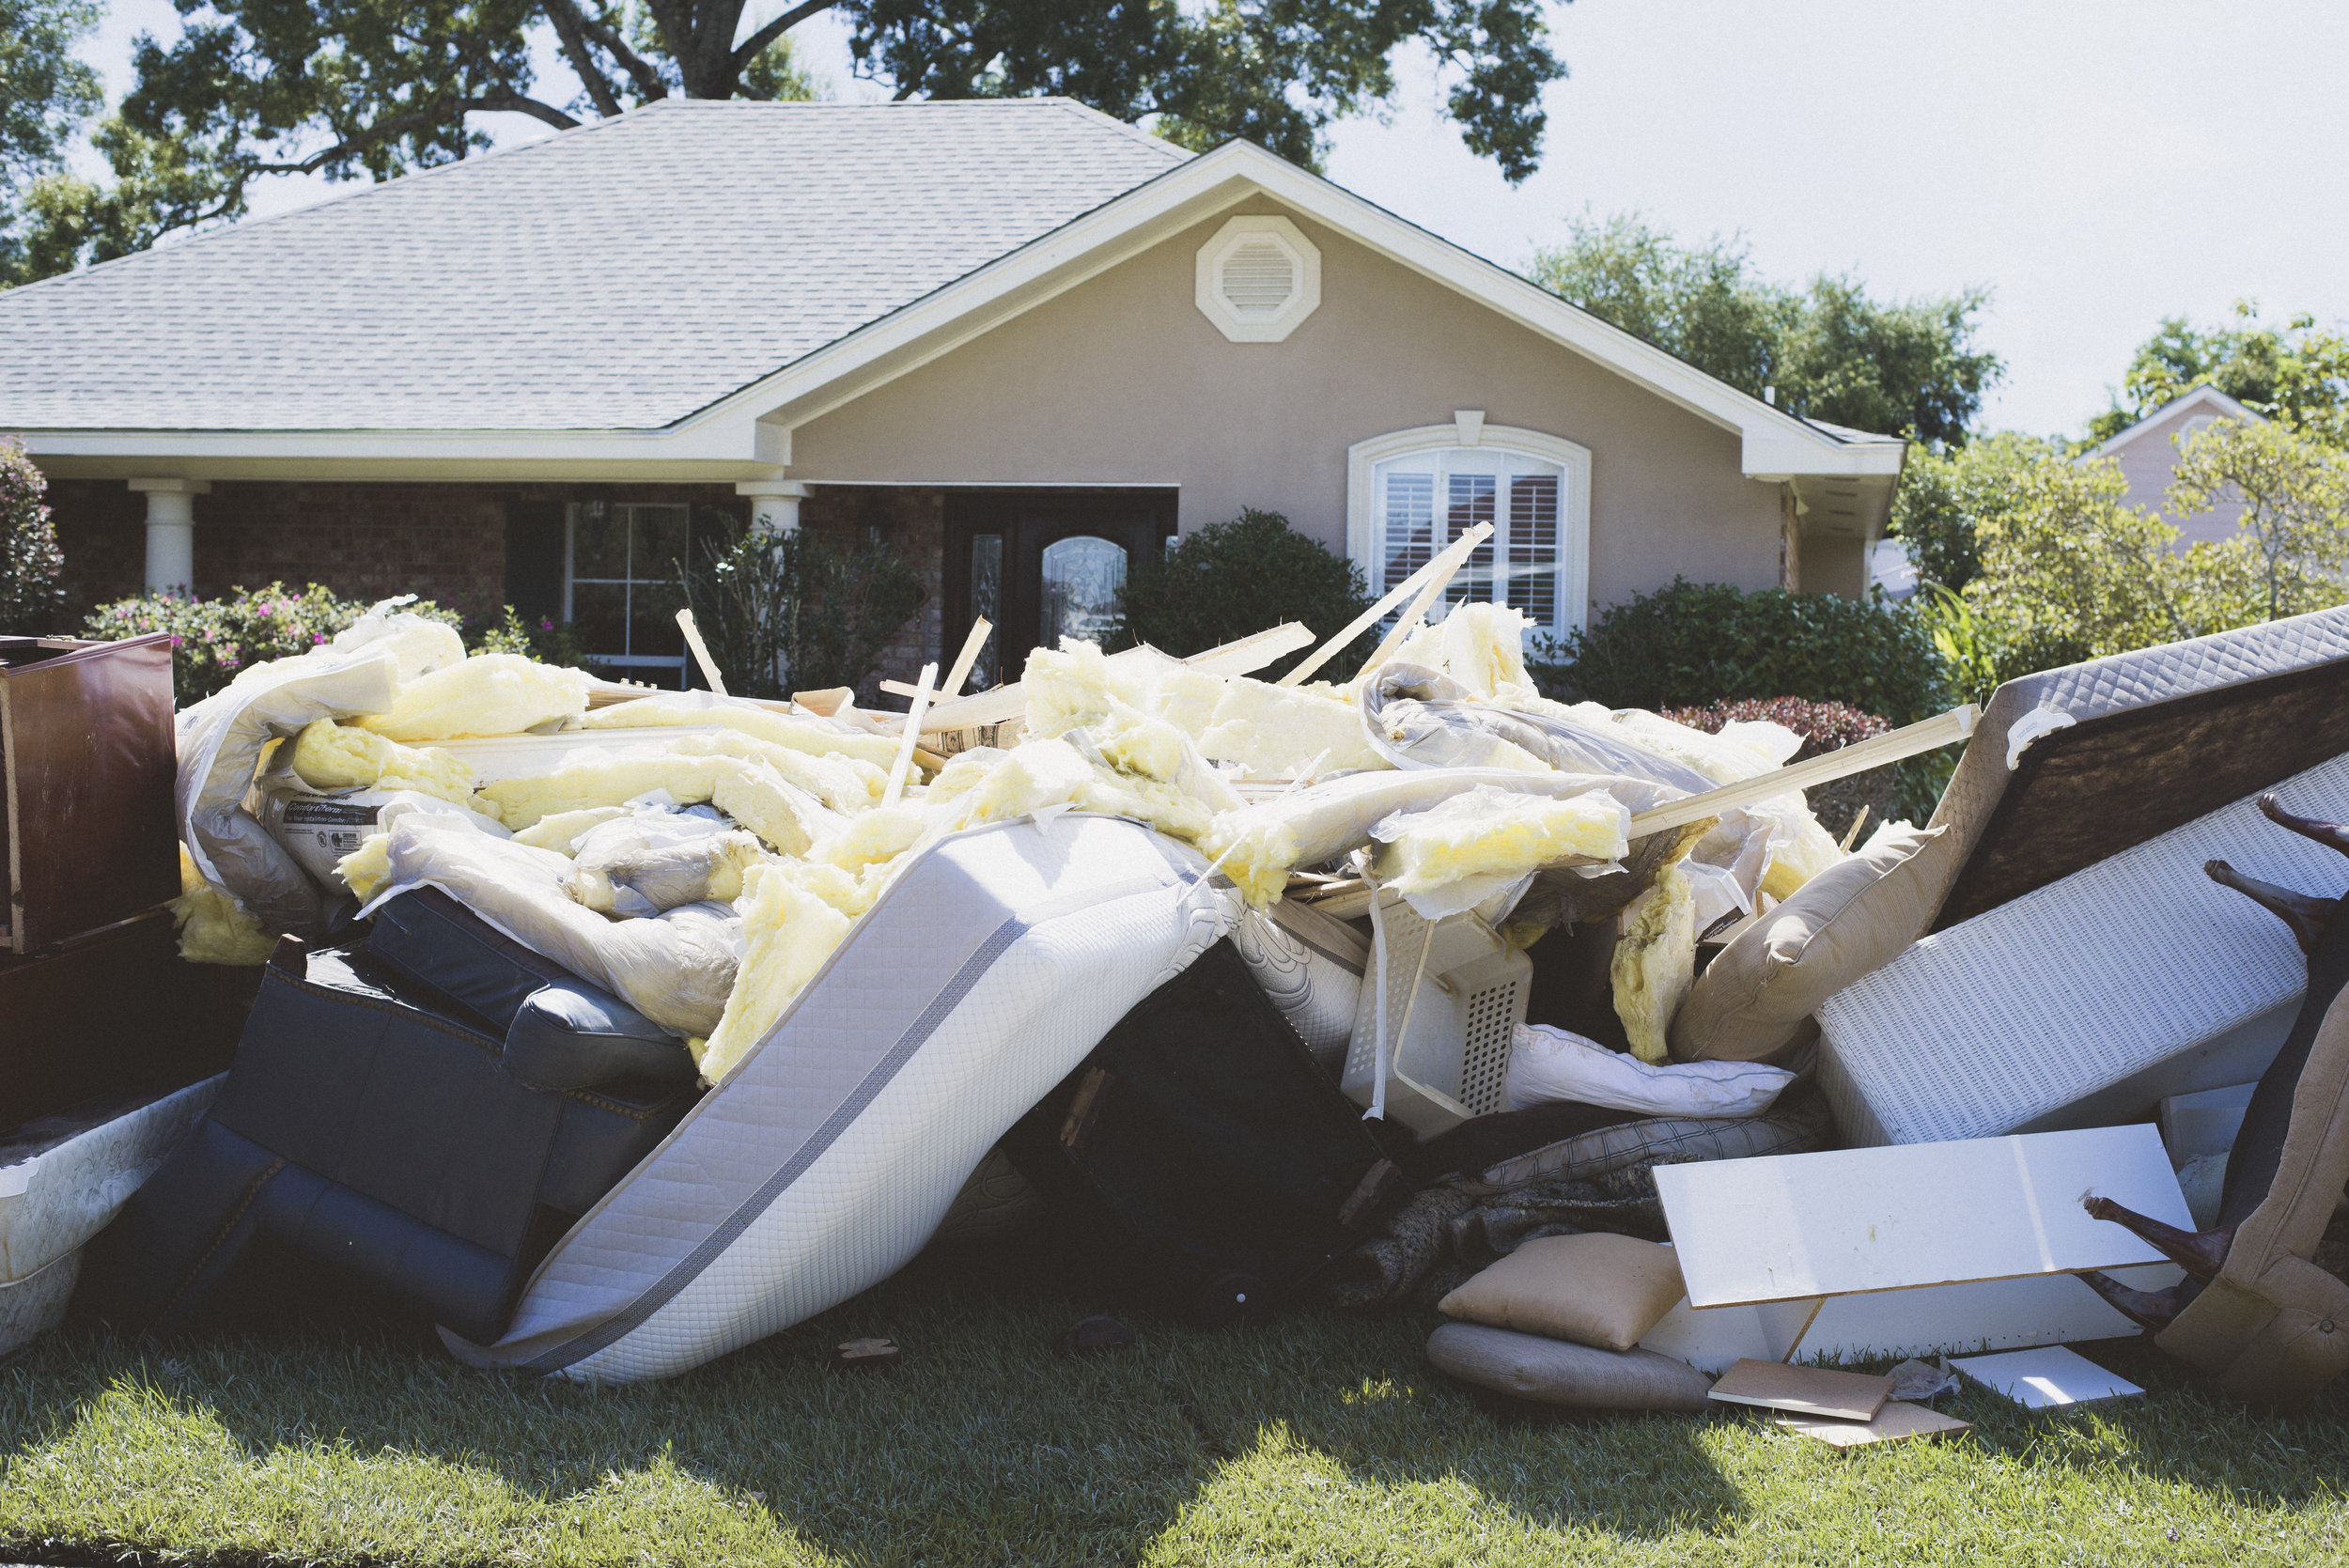 Denham Springs Flood Aftermath_Allie Appel_10.jpg